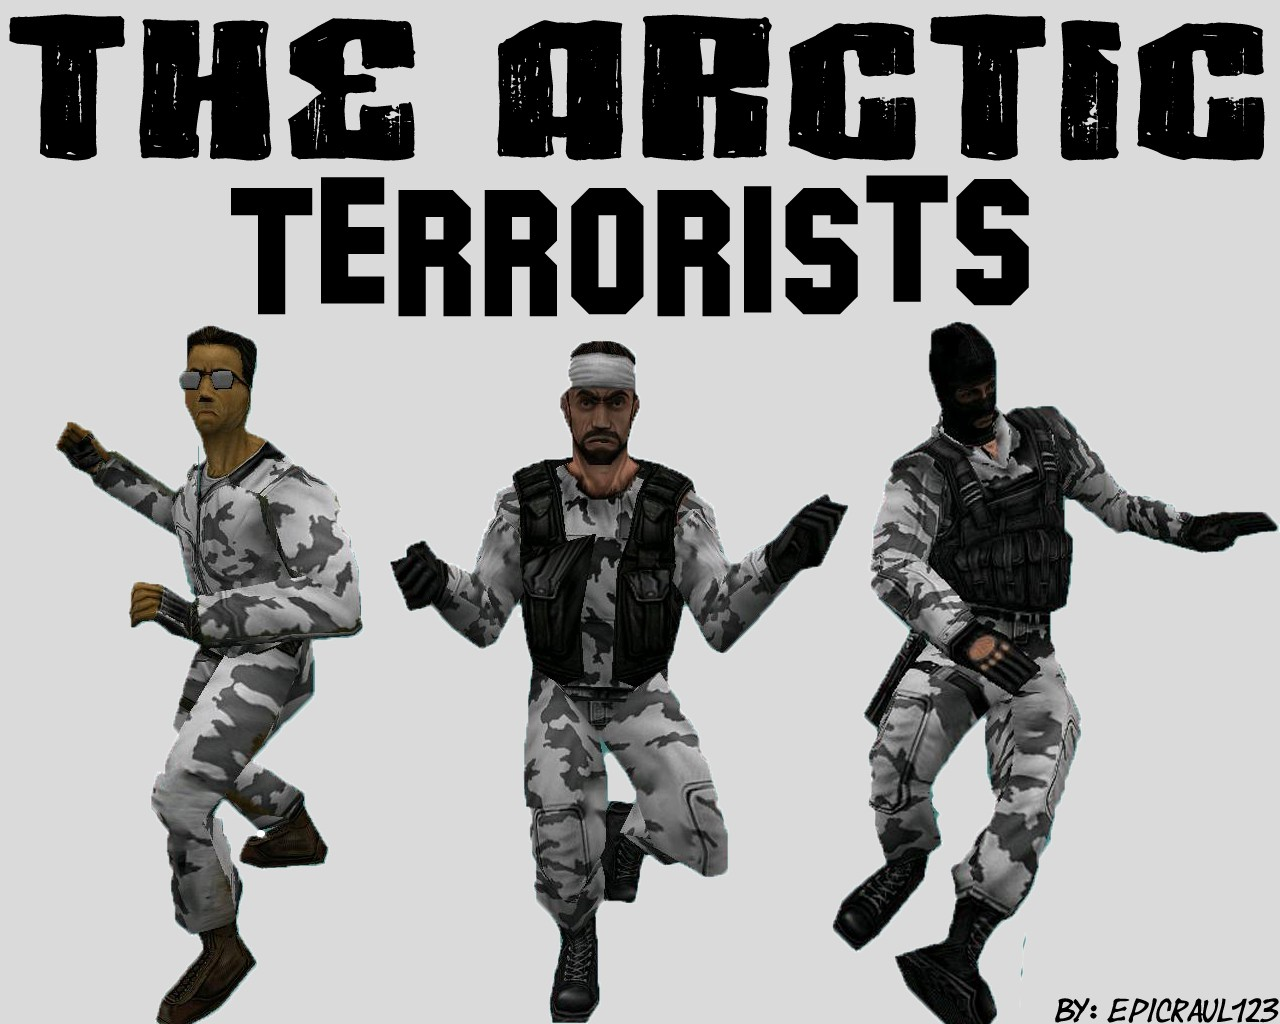 The Arctic Terrorists pack